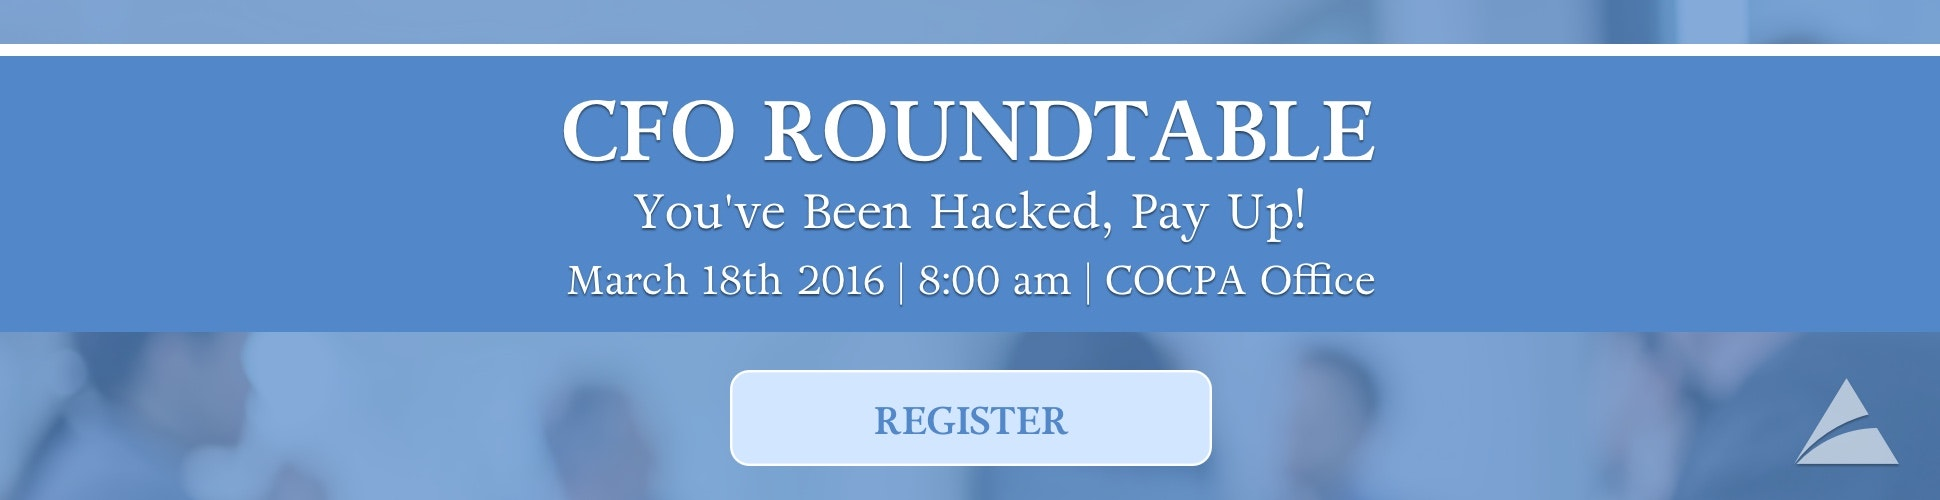 Register Now for CFO Roundtable